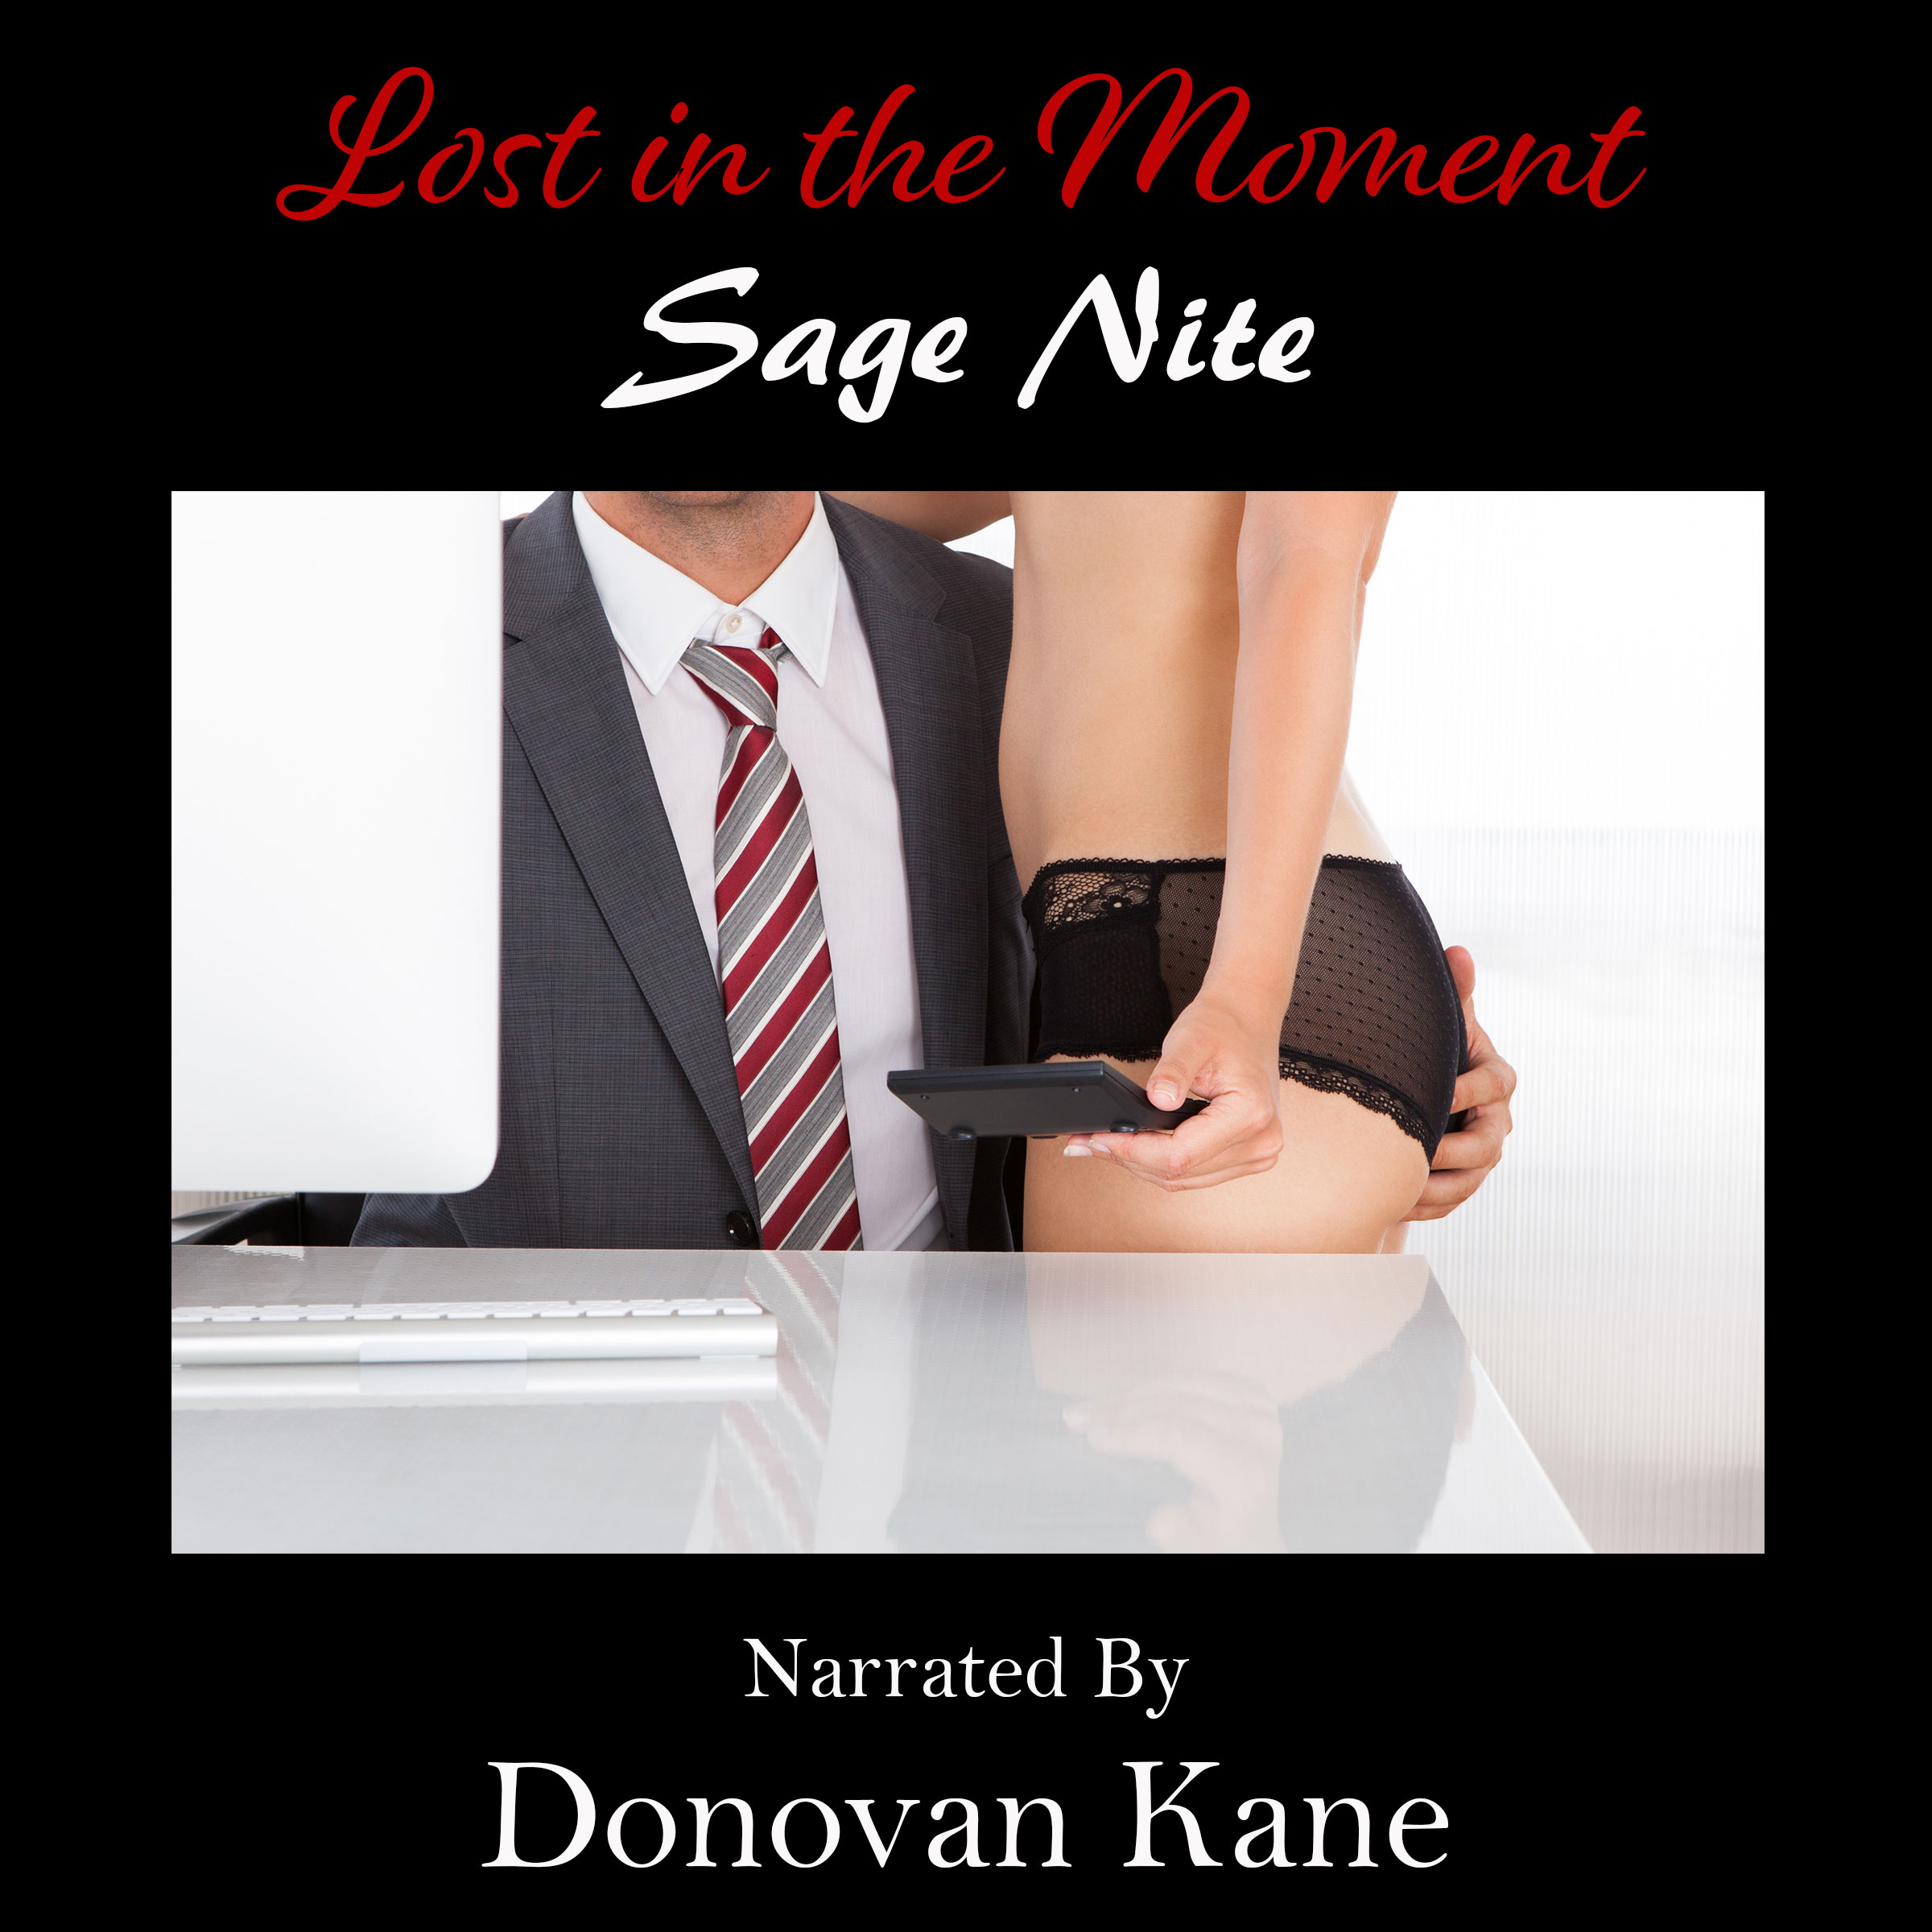 Lost in the Moment by Sage Nite